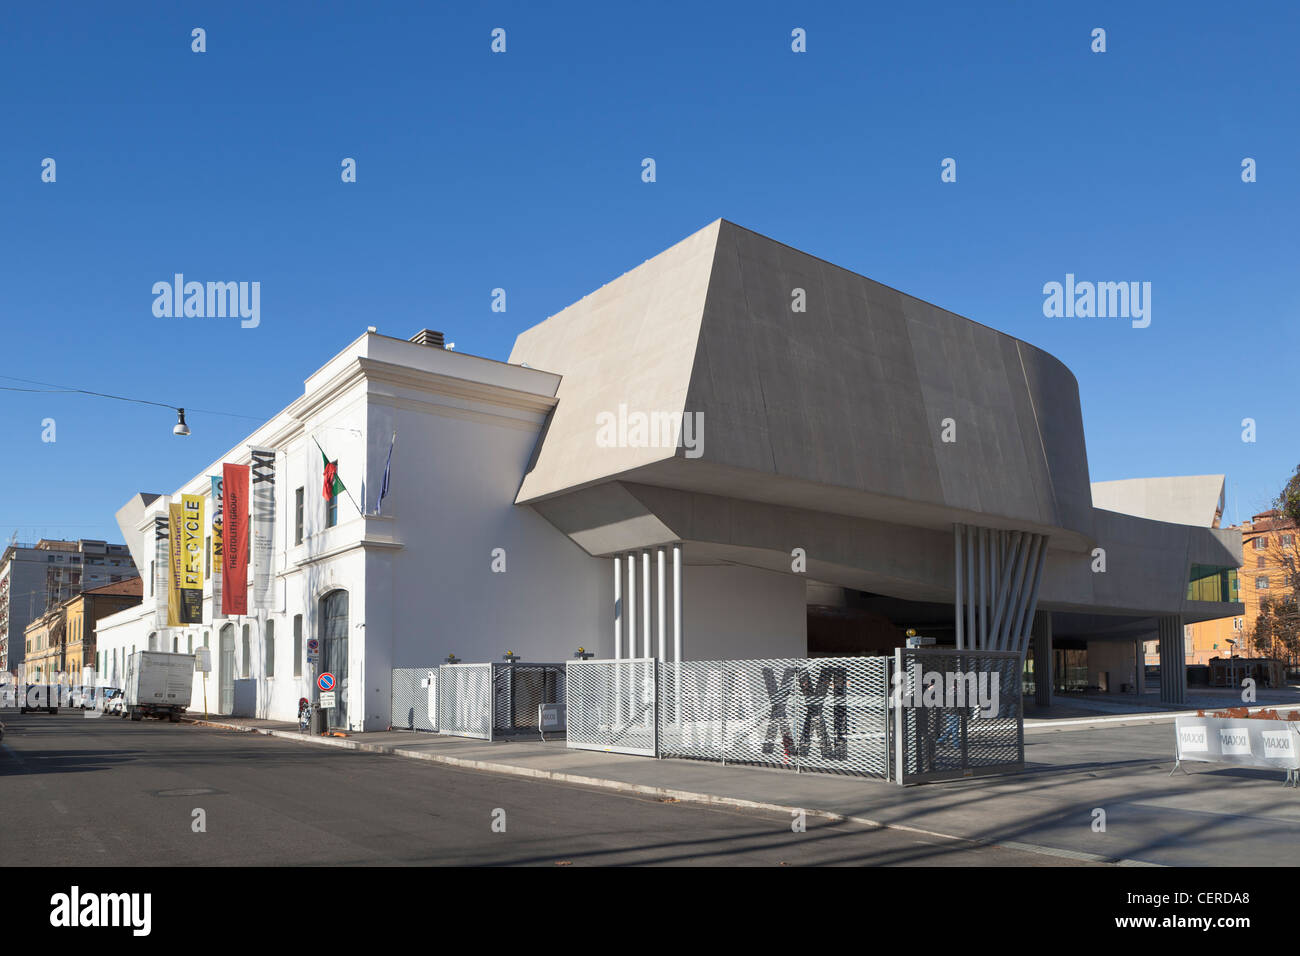 The MAXXI, National Museum of 21st Century Arts, Rome, Italy - Stock Image